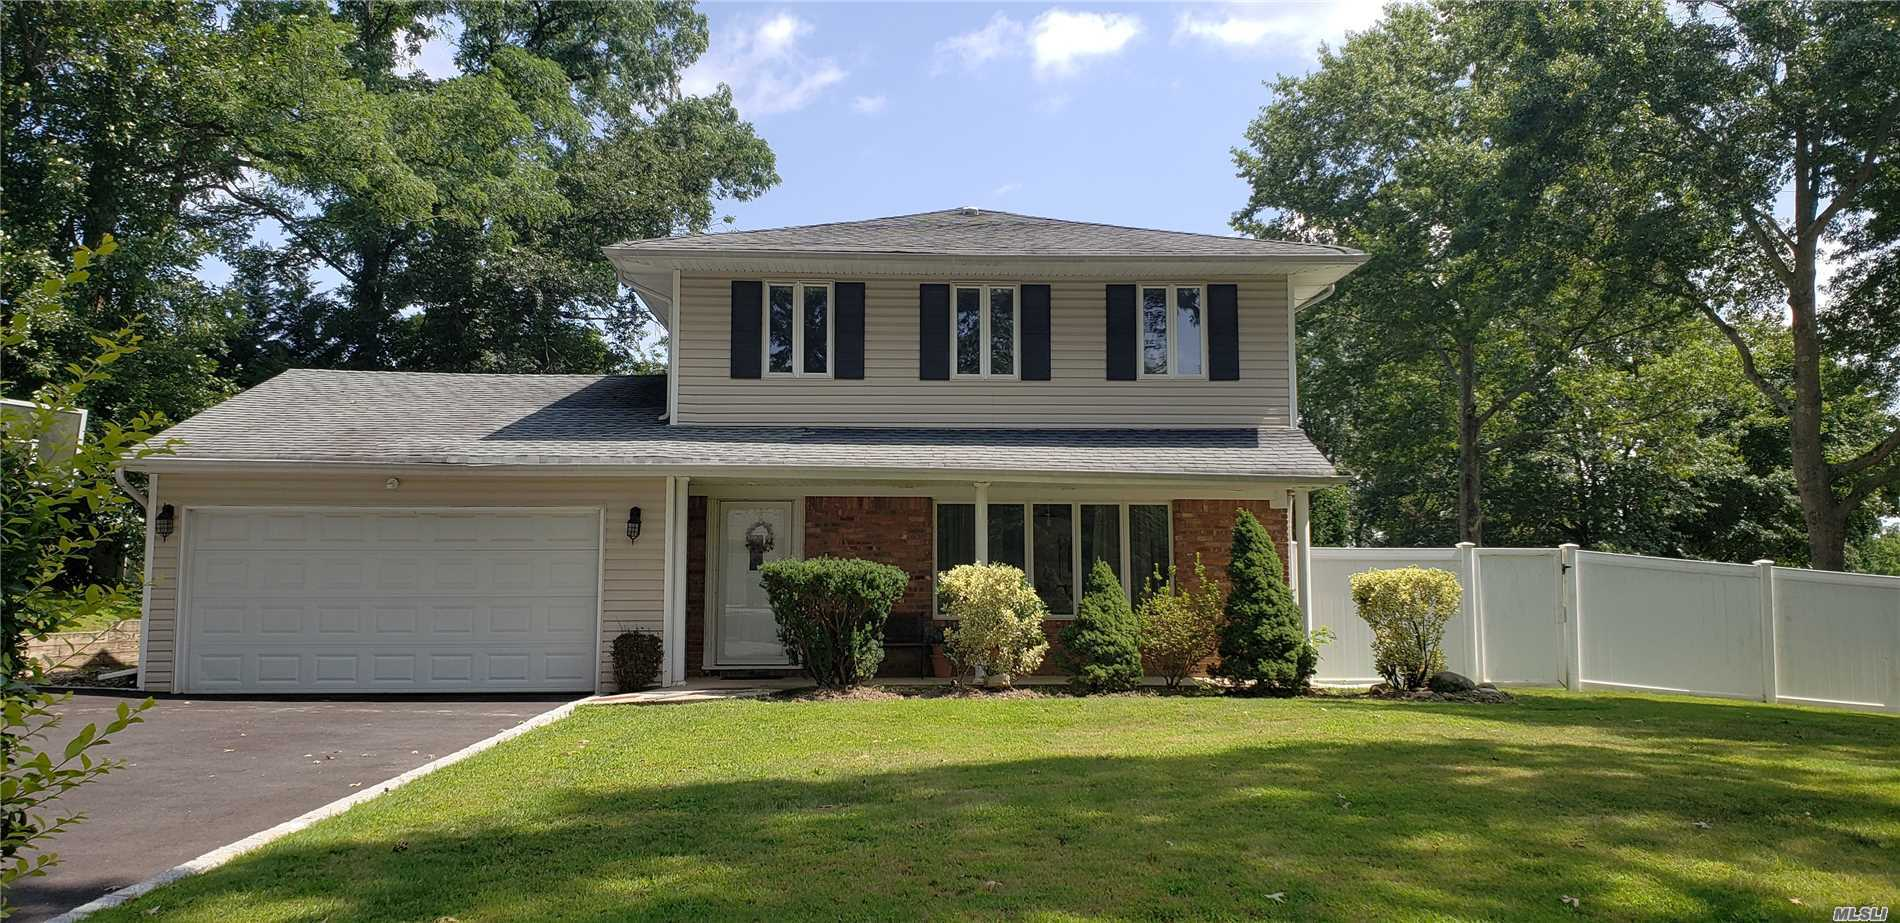 Wonderful Colonial Situated On A Flat Corner Lot With Plenty Of Room To Add A Pool! New Eik, Formal Lr & Dr, Large Den W/Vaulted Ceiling, Half Bath, Master Br Suite W/Private Bath, 3 Add'l Generously Sized Brs, Full Bath, Cac, Gas Heat & Cooking, 2 Car Attached Garage, New Driveway. This Home Is Spotless And Ready To Call Home!